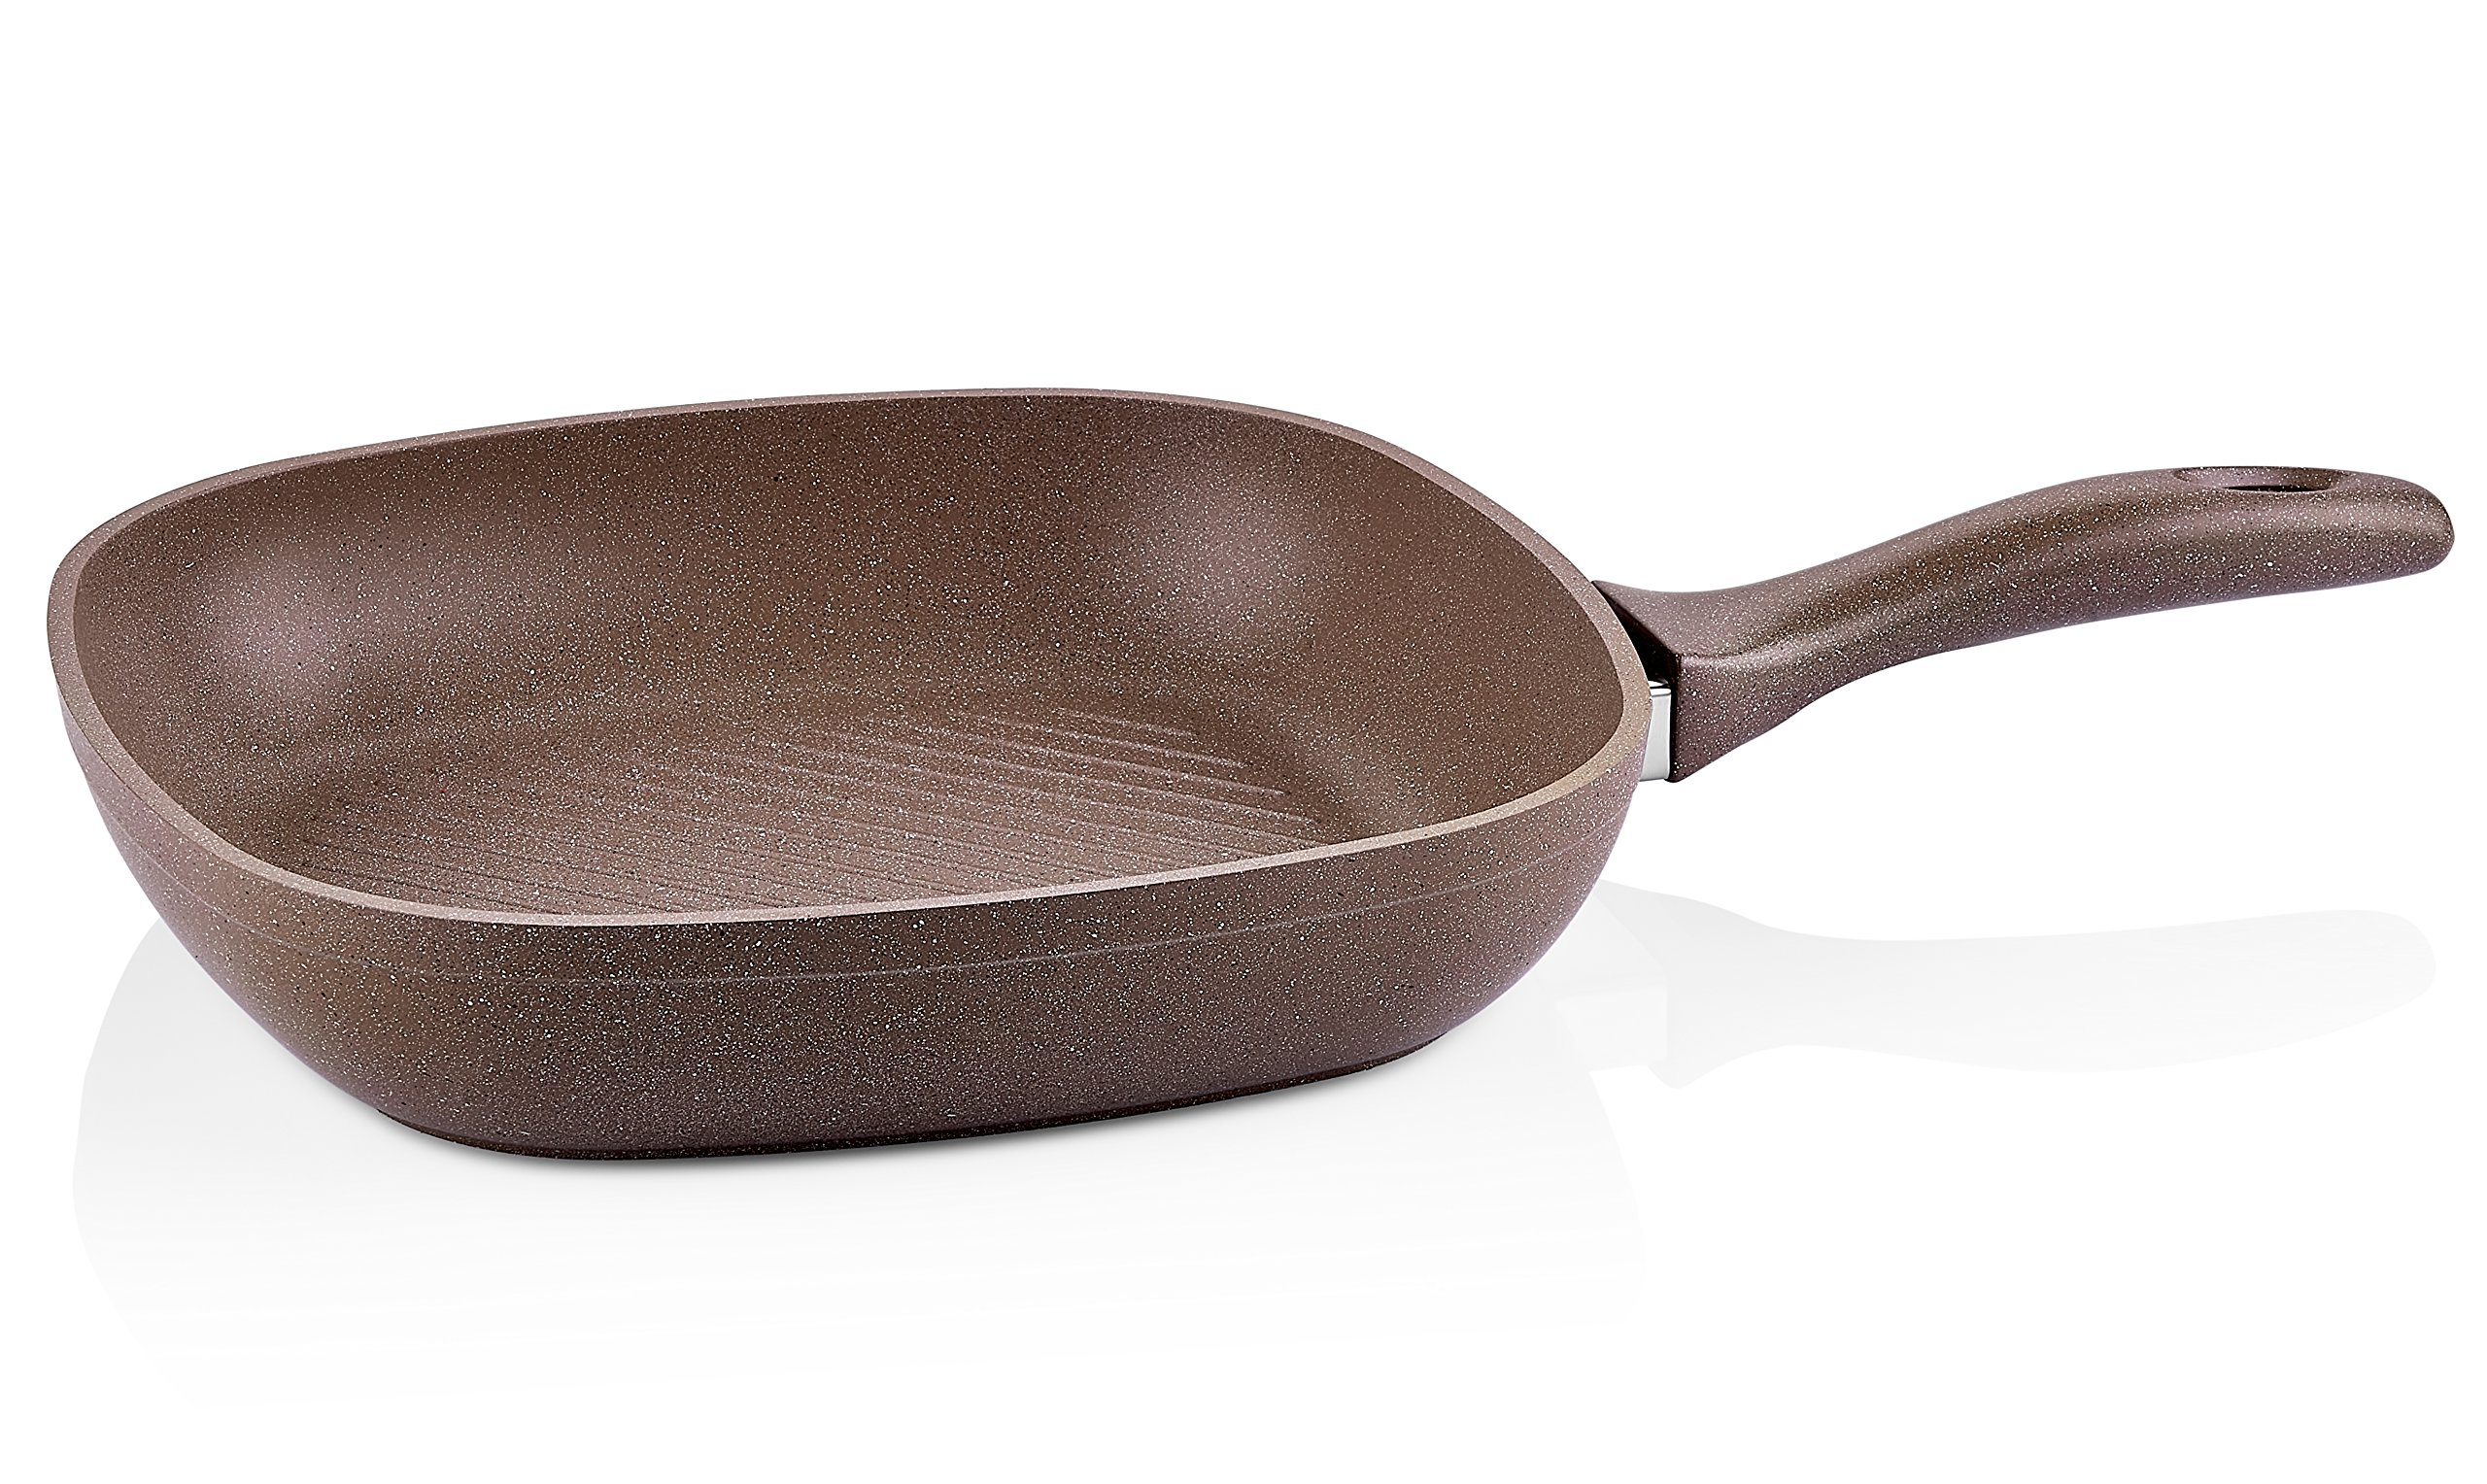 Granite Grill Pan Non-Stick 11-Inch | Scratch-Resistant Forged Aluminum w/ QuanTanium Coating | Even Heating Cooking Dishware | Includes Storage Bag